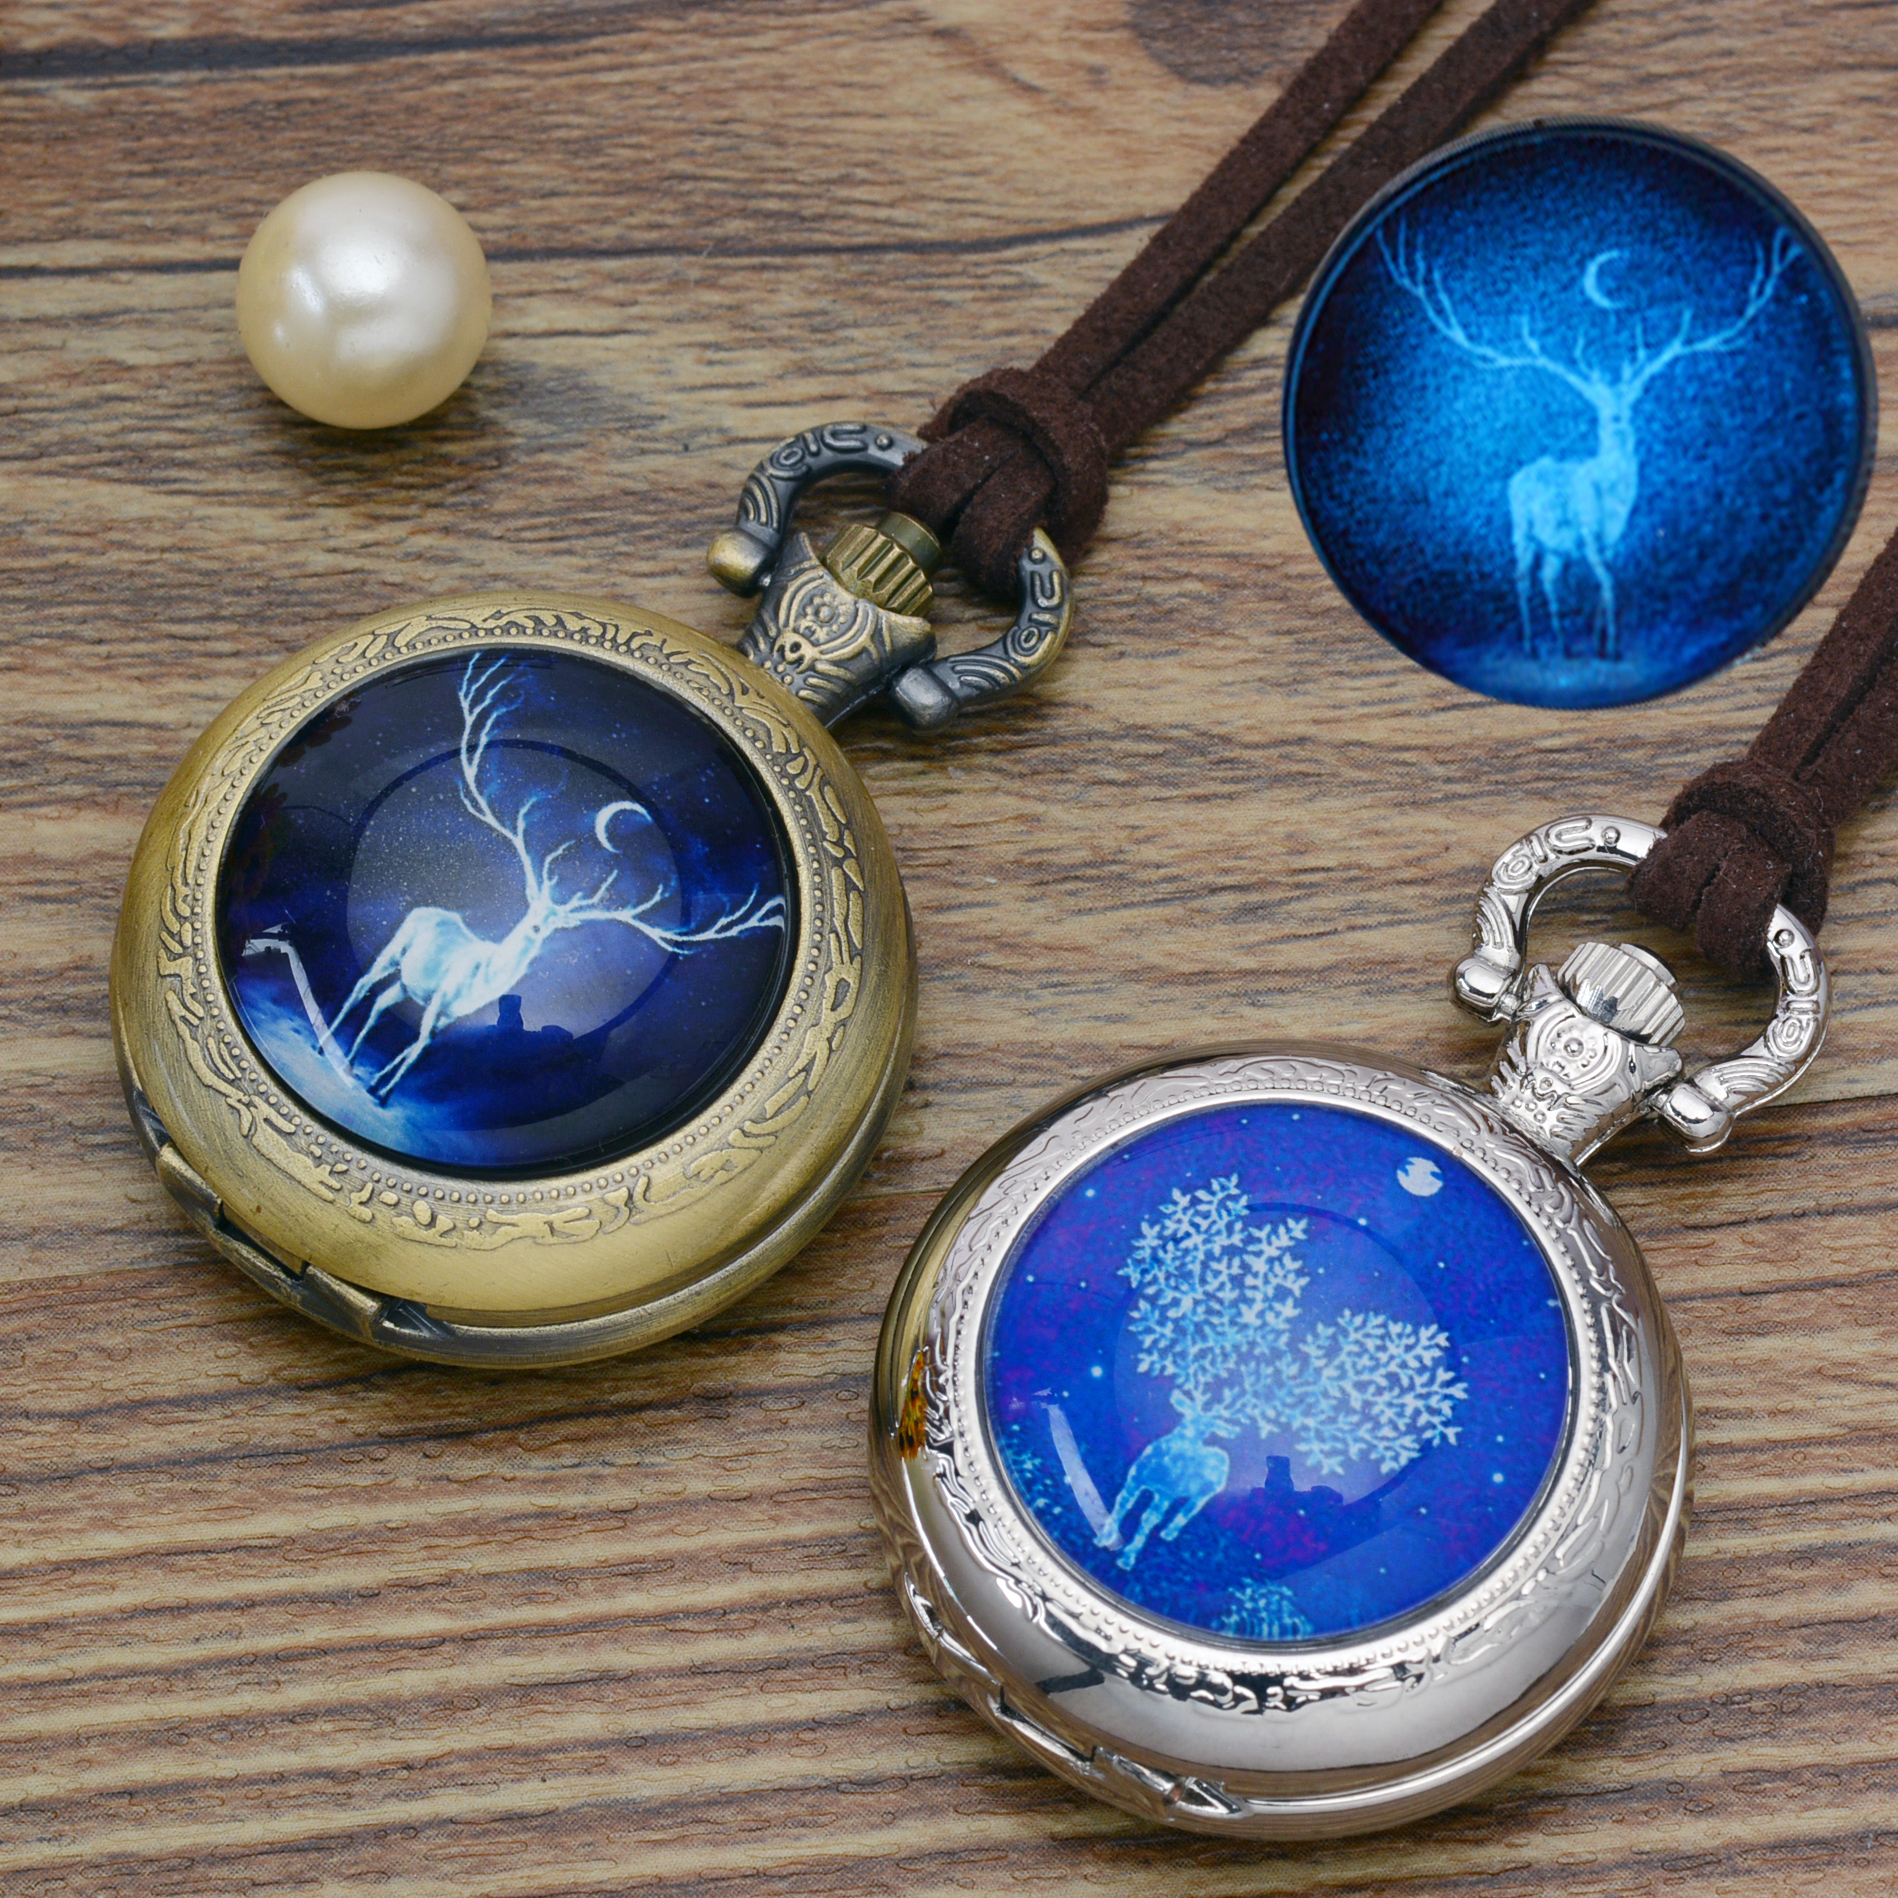 Fashion Luminous deer pocket watch necklace woman men fob watches silver bronze round convex lens glass picture girl cute lady old retro bronze pocket watch doctor who design quartz fob watch with chain necklace